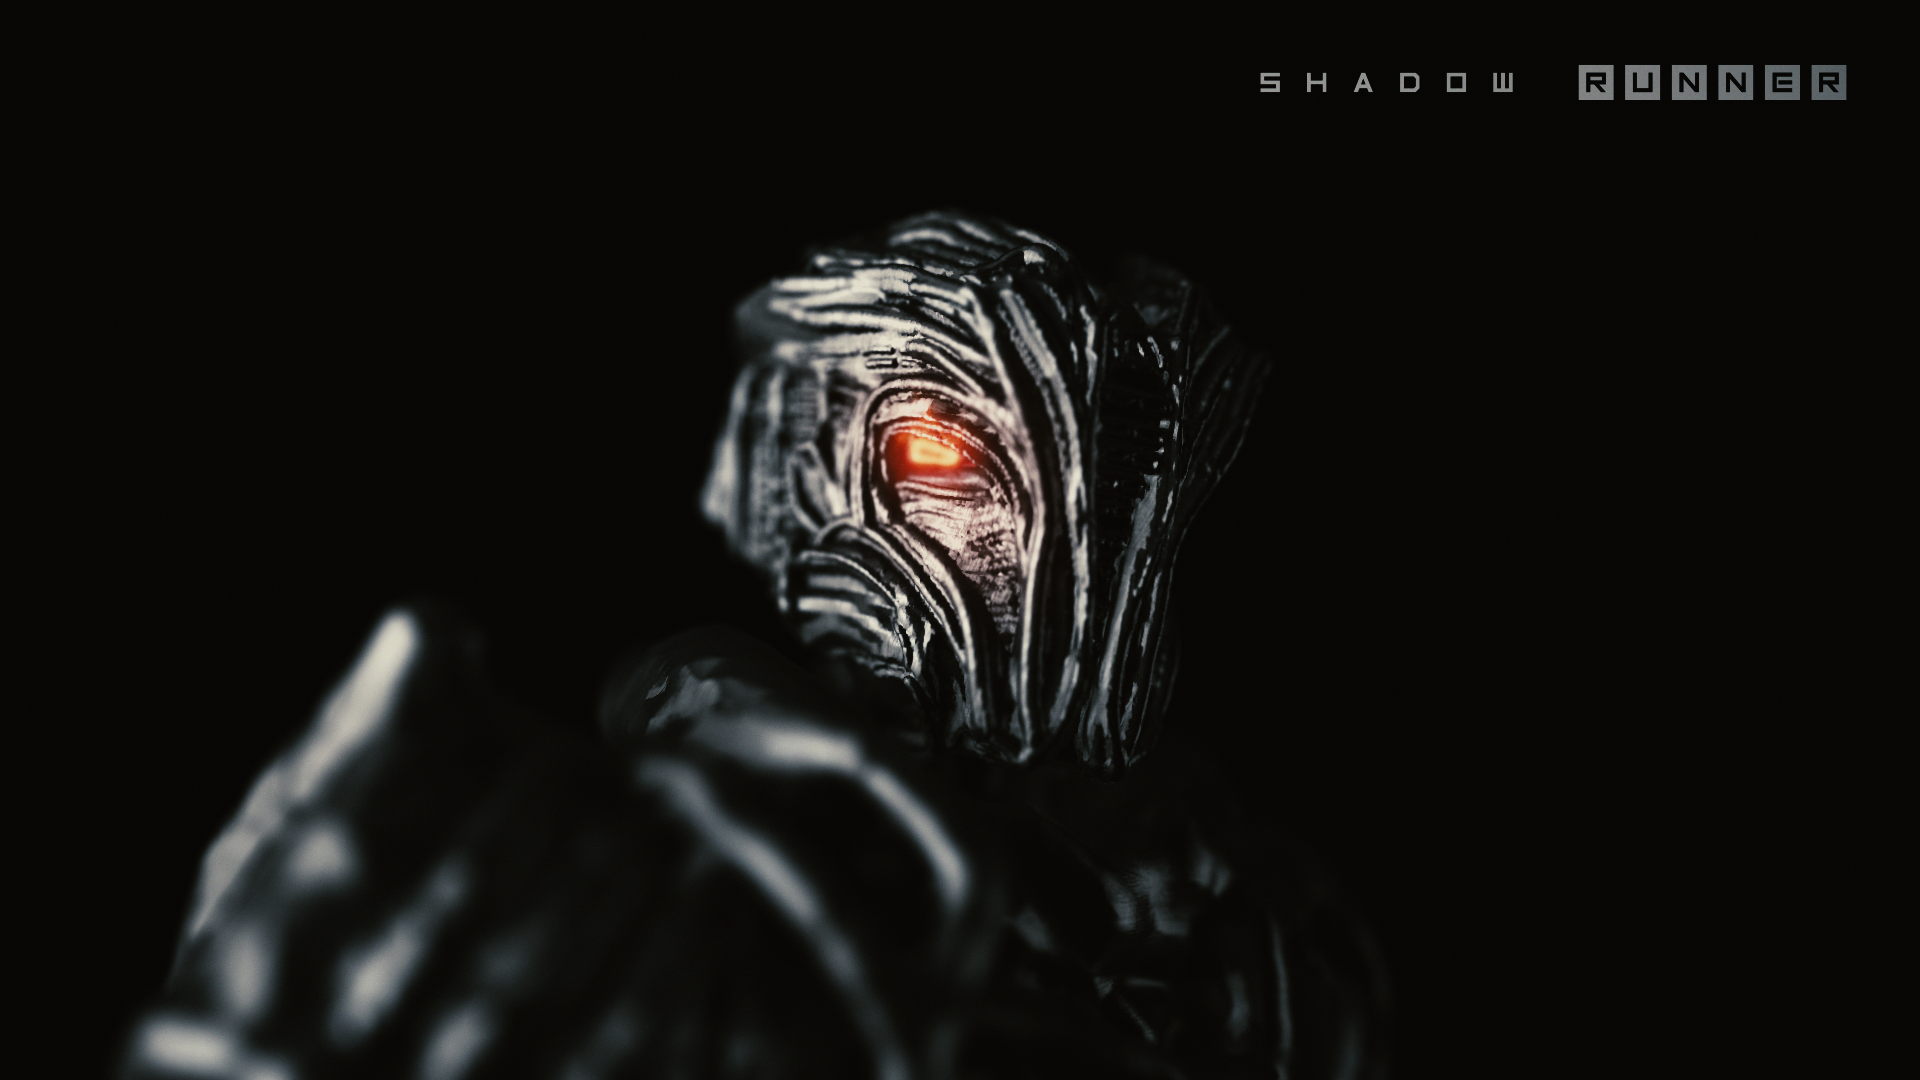 Shadow Runner (Medium > C4D > After Effects) — Oculus